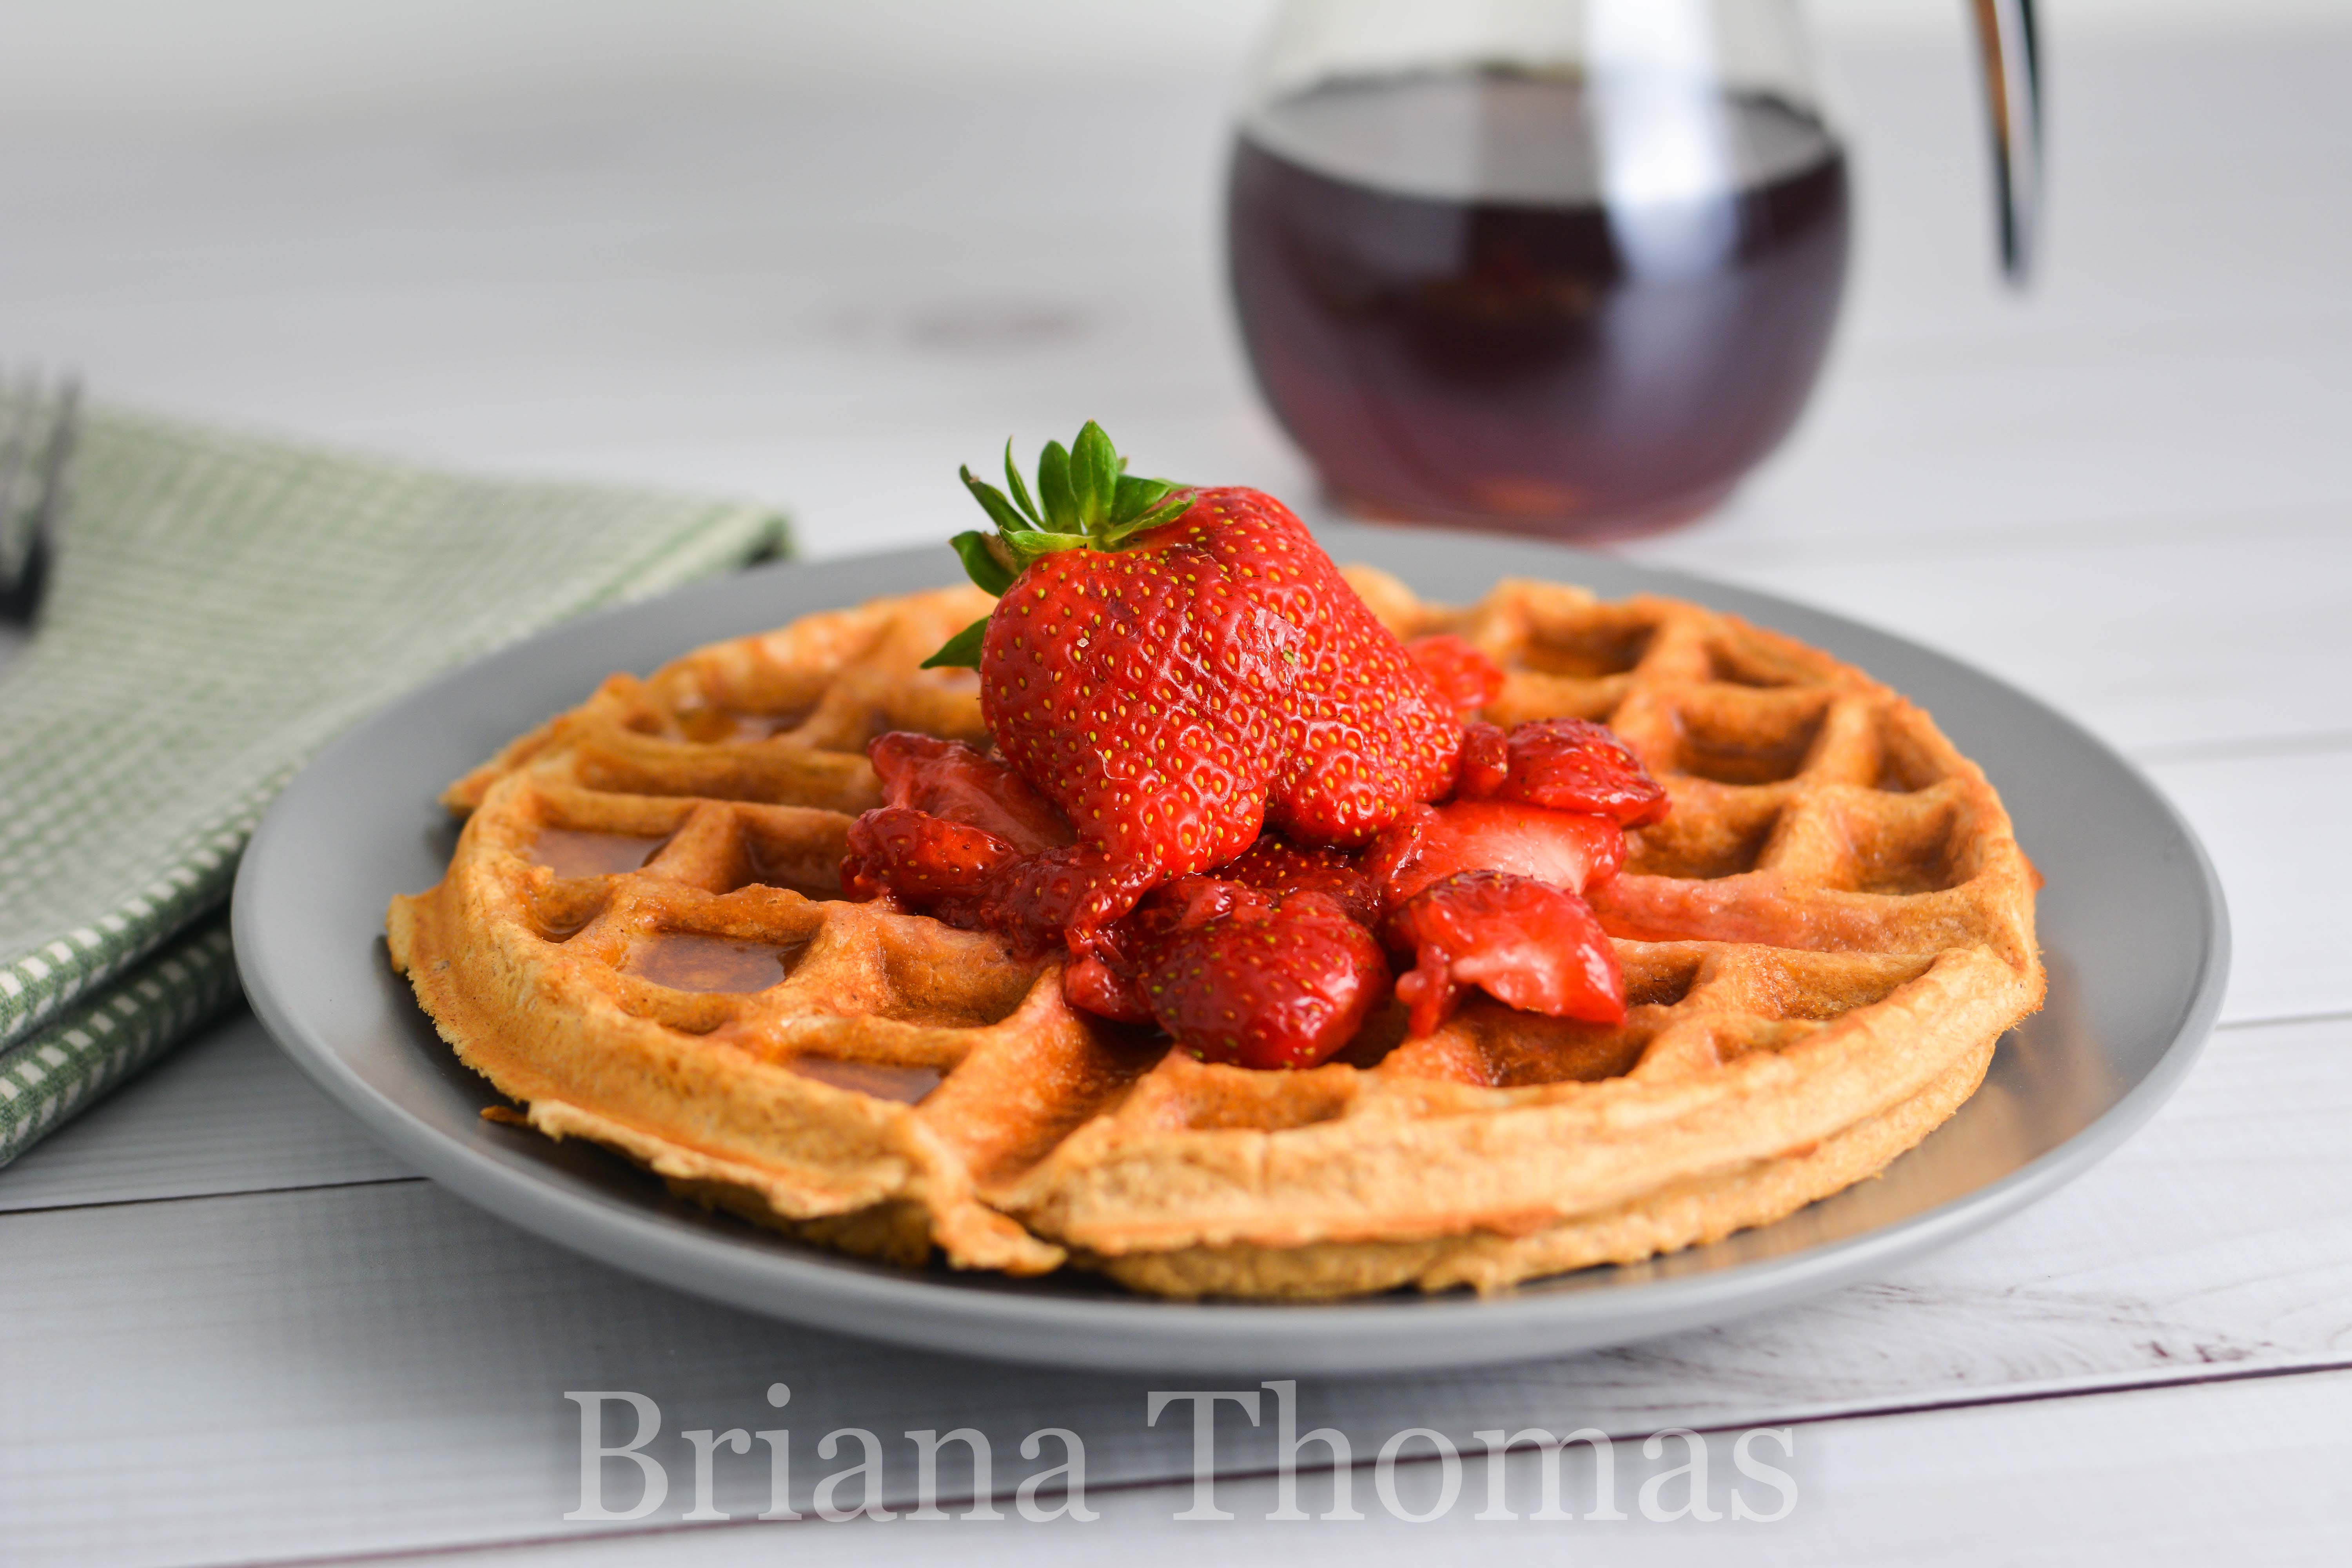 This delicious and filling single-serve PB&J Protein Waffle has over 20g protein and no significant carb or fat sources! THM:FP, sugar free, gluten free